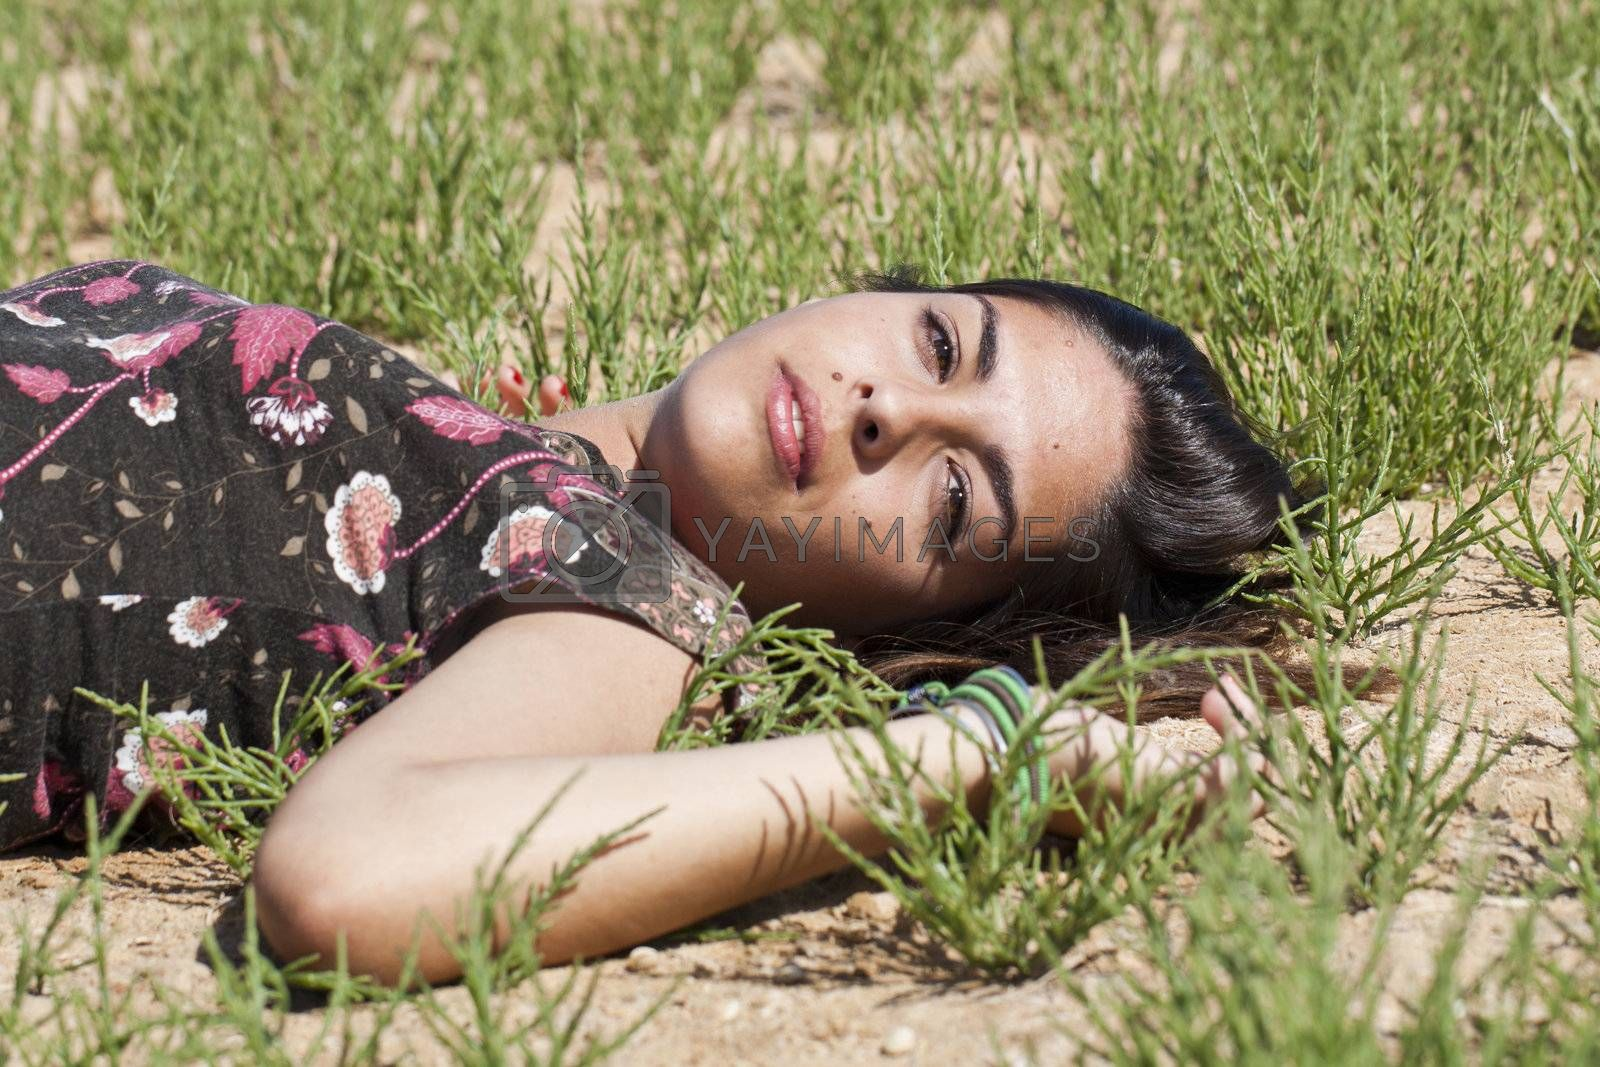 Beautiful girl with floral dress on the ground in a sunny day.